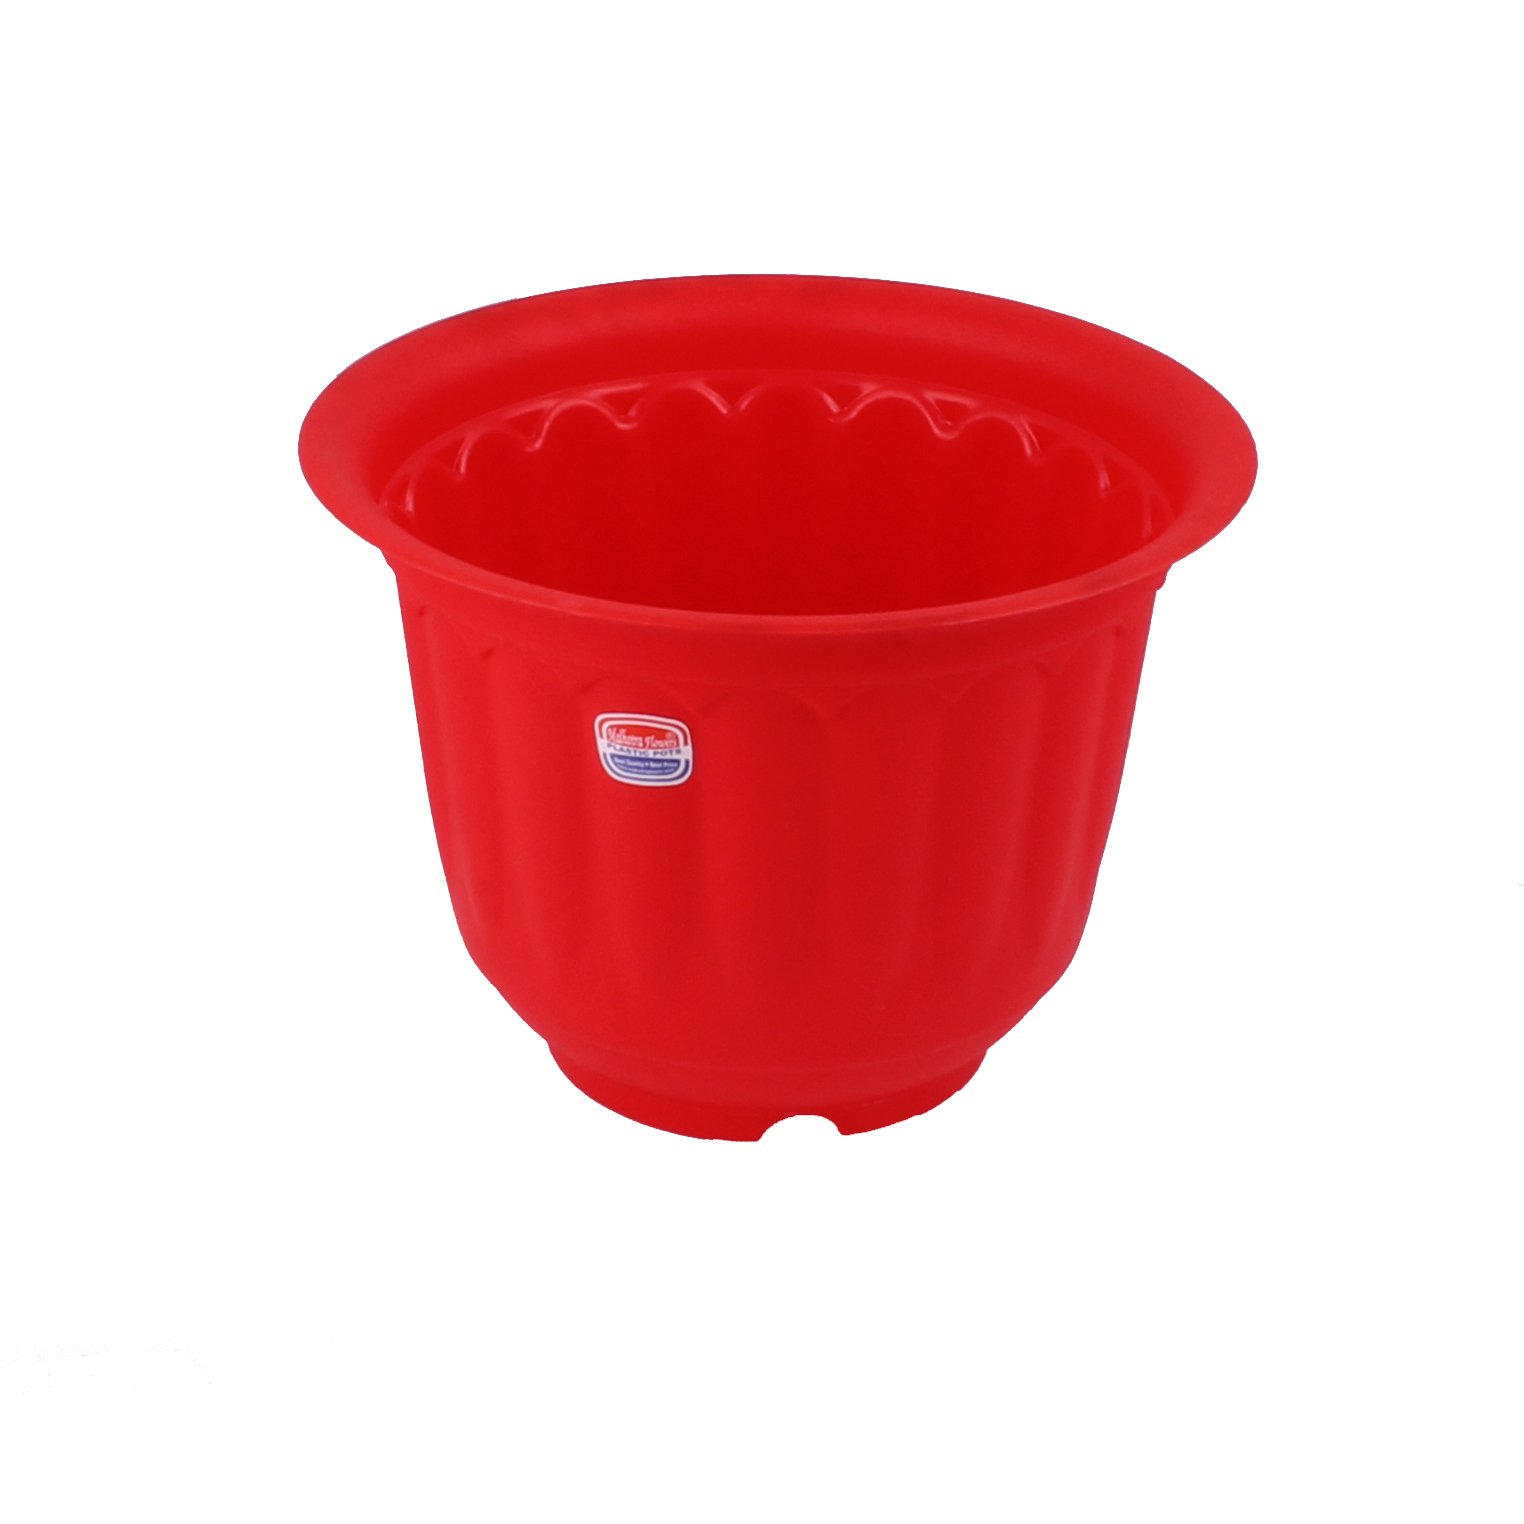 Gardens Need Jasmine Pot with Bottom Tray Set (10-inch, Red, 3-Pieces) (B01N9FD9KO) Amazon Price History, Amazon Price Tracker